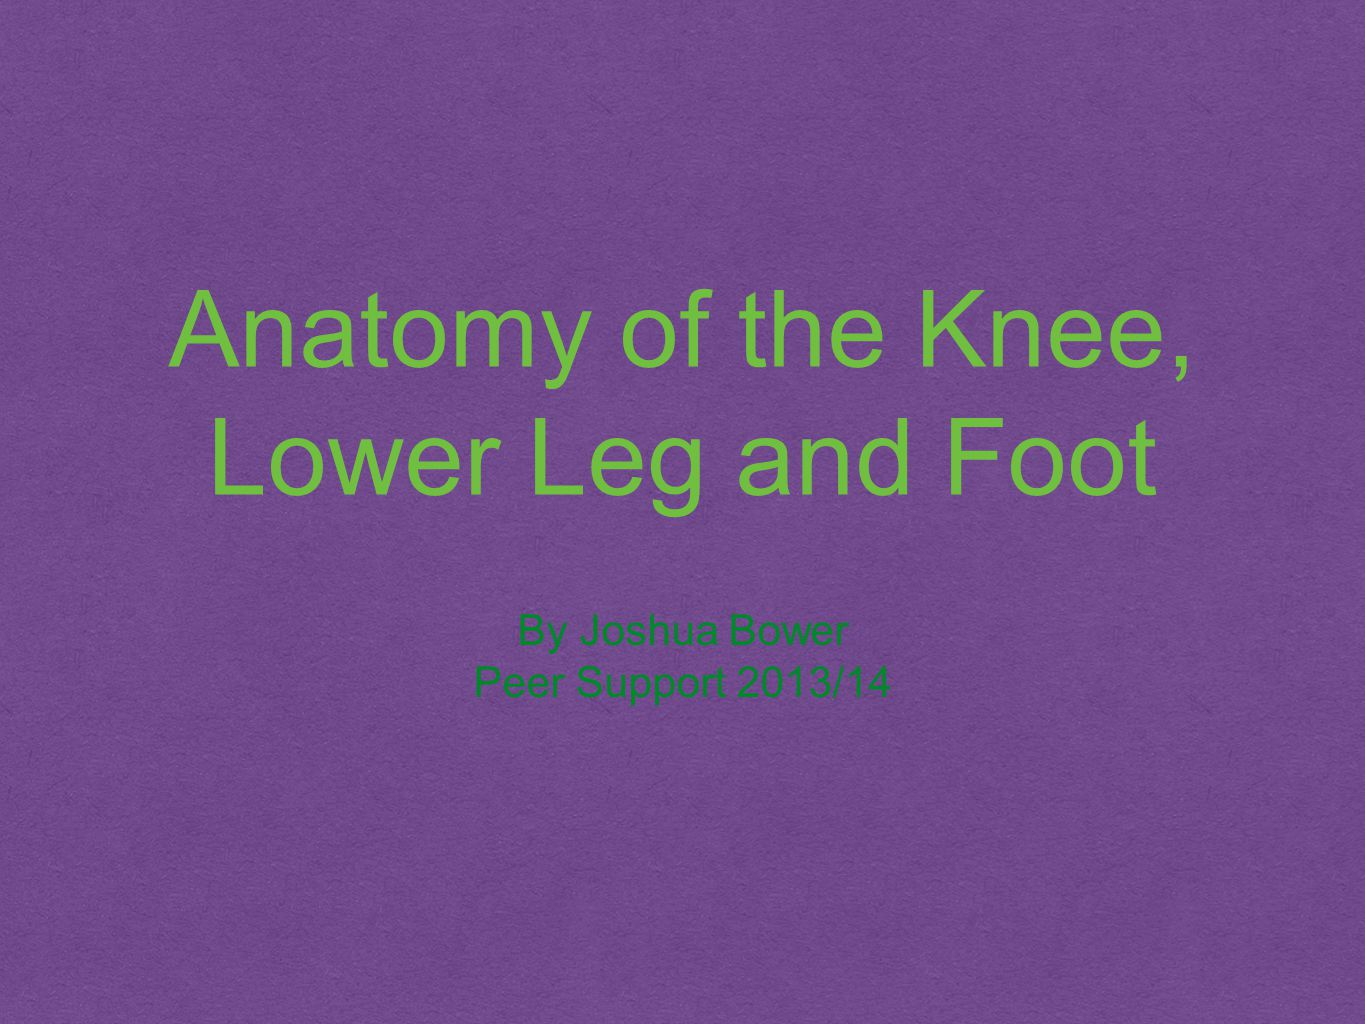 Anatomy of the Knee, Lower Leg and Foot By Joshua Bower Peer Support 2013/14